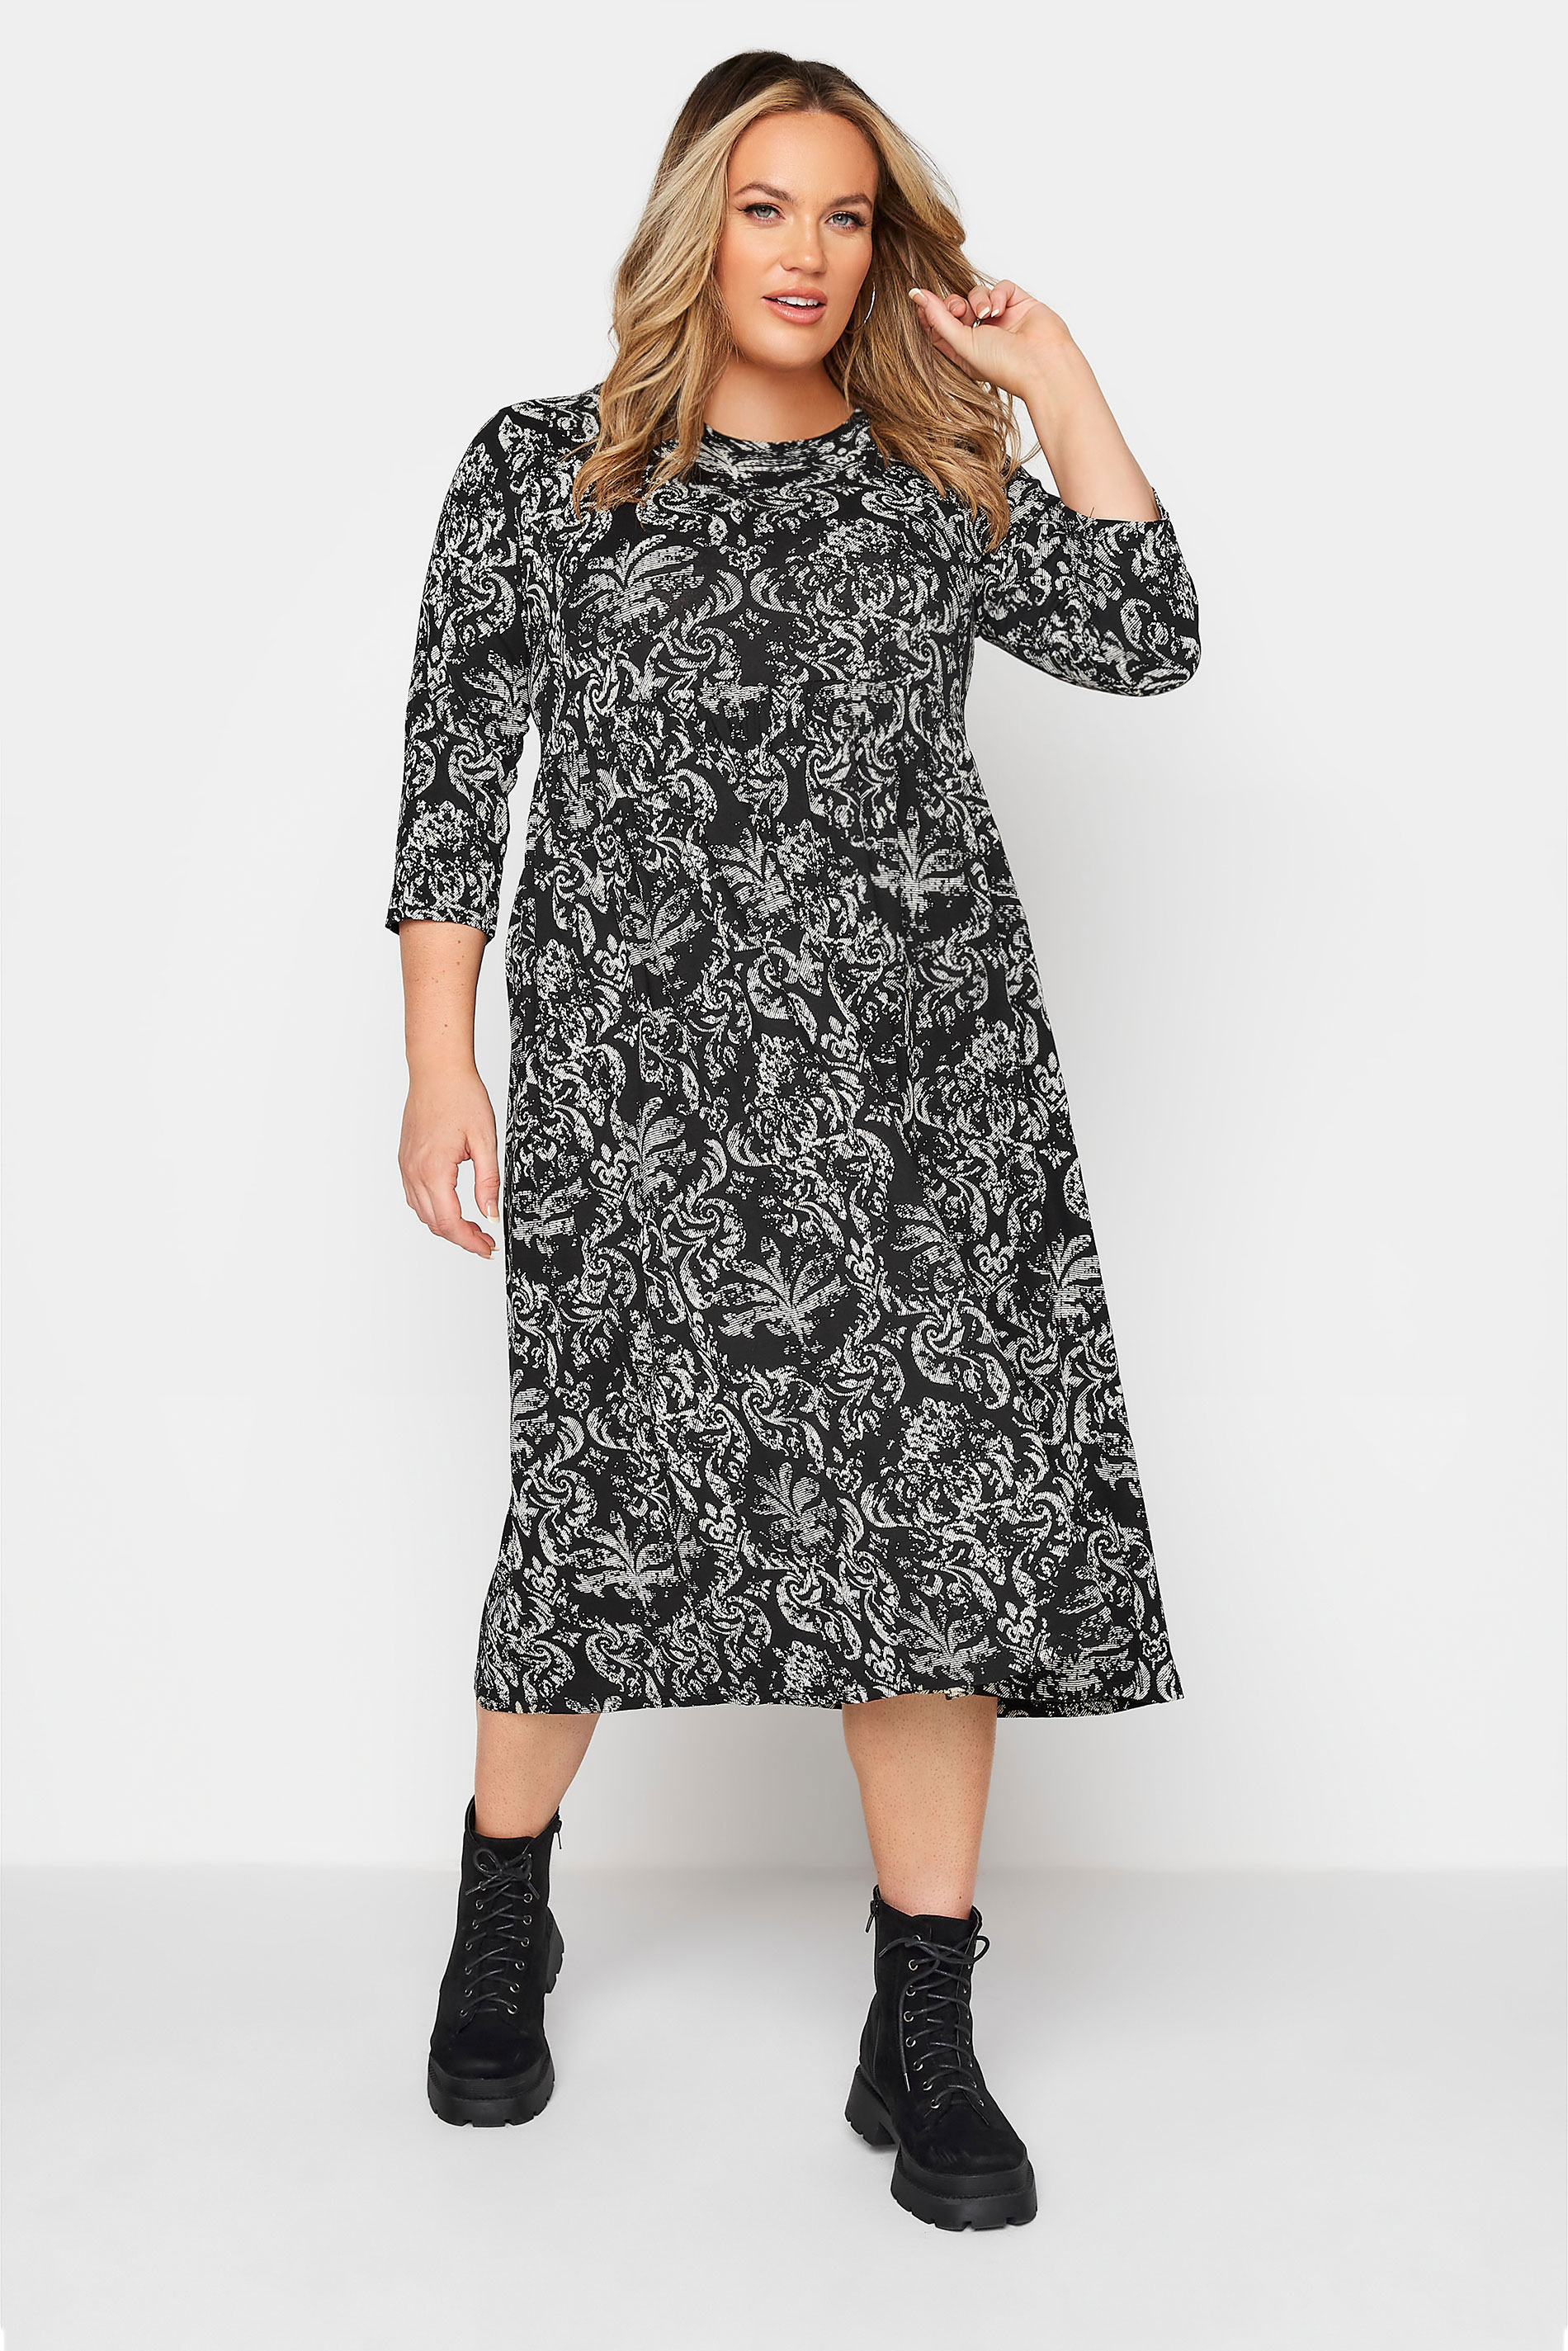 LIMITED COLLECTION Black Paisley Print Midaxi Dress_A.jpg